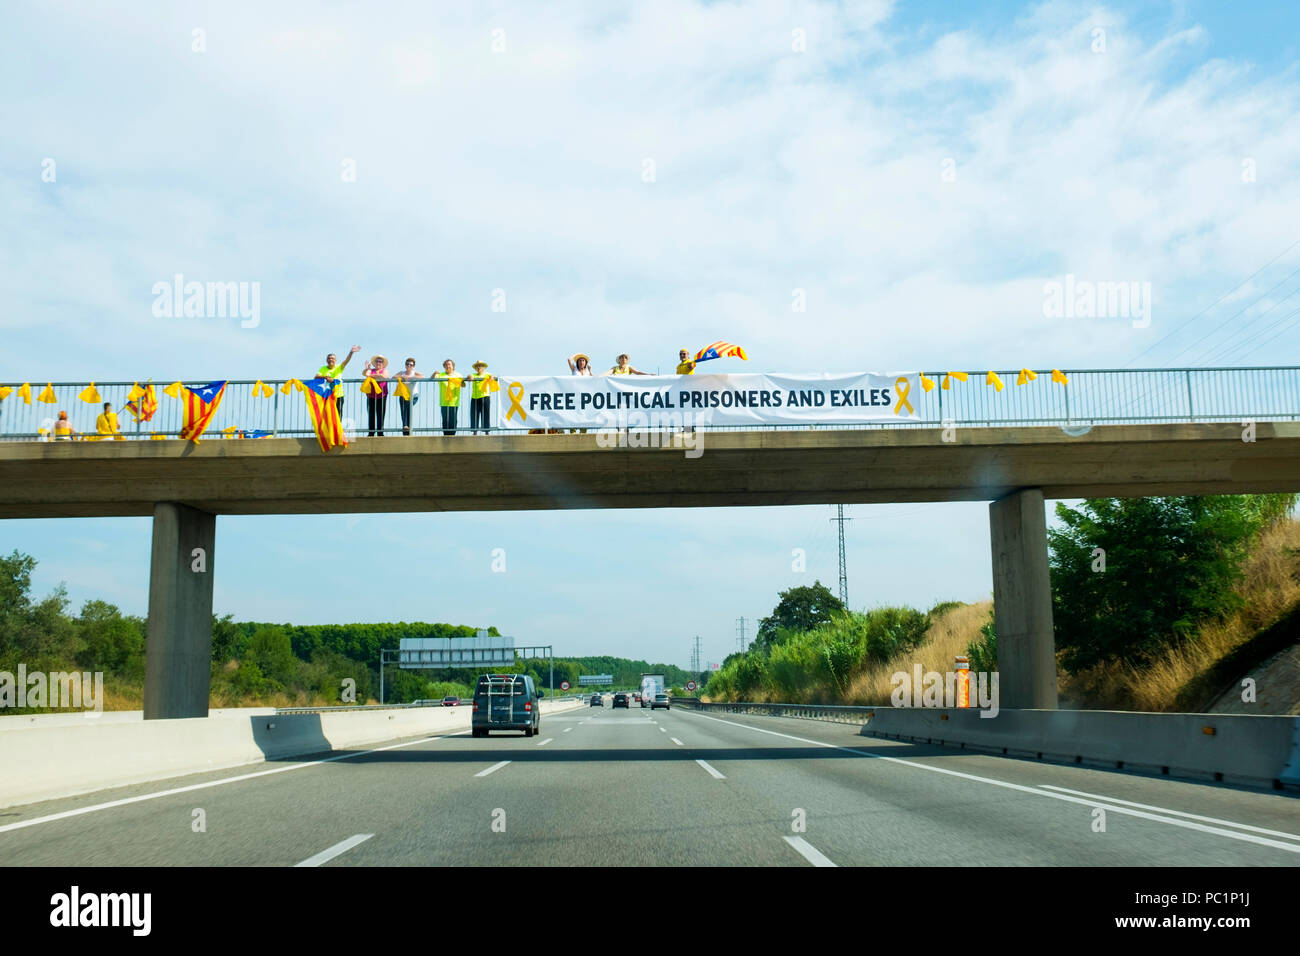 Pro-Catalan independence activists on flyovers used banners and flags to pronounce the Catalan republic and call for the release of political prisoner - Stock Image